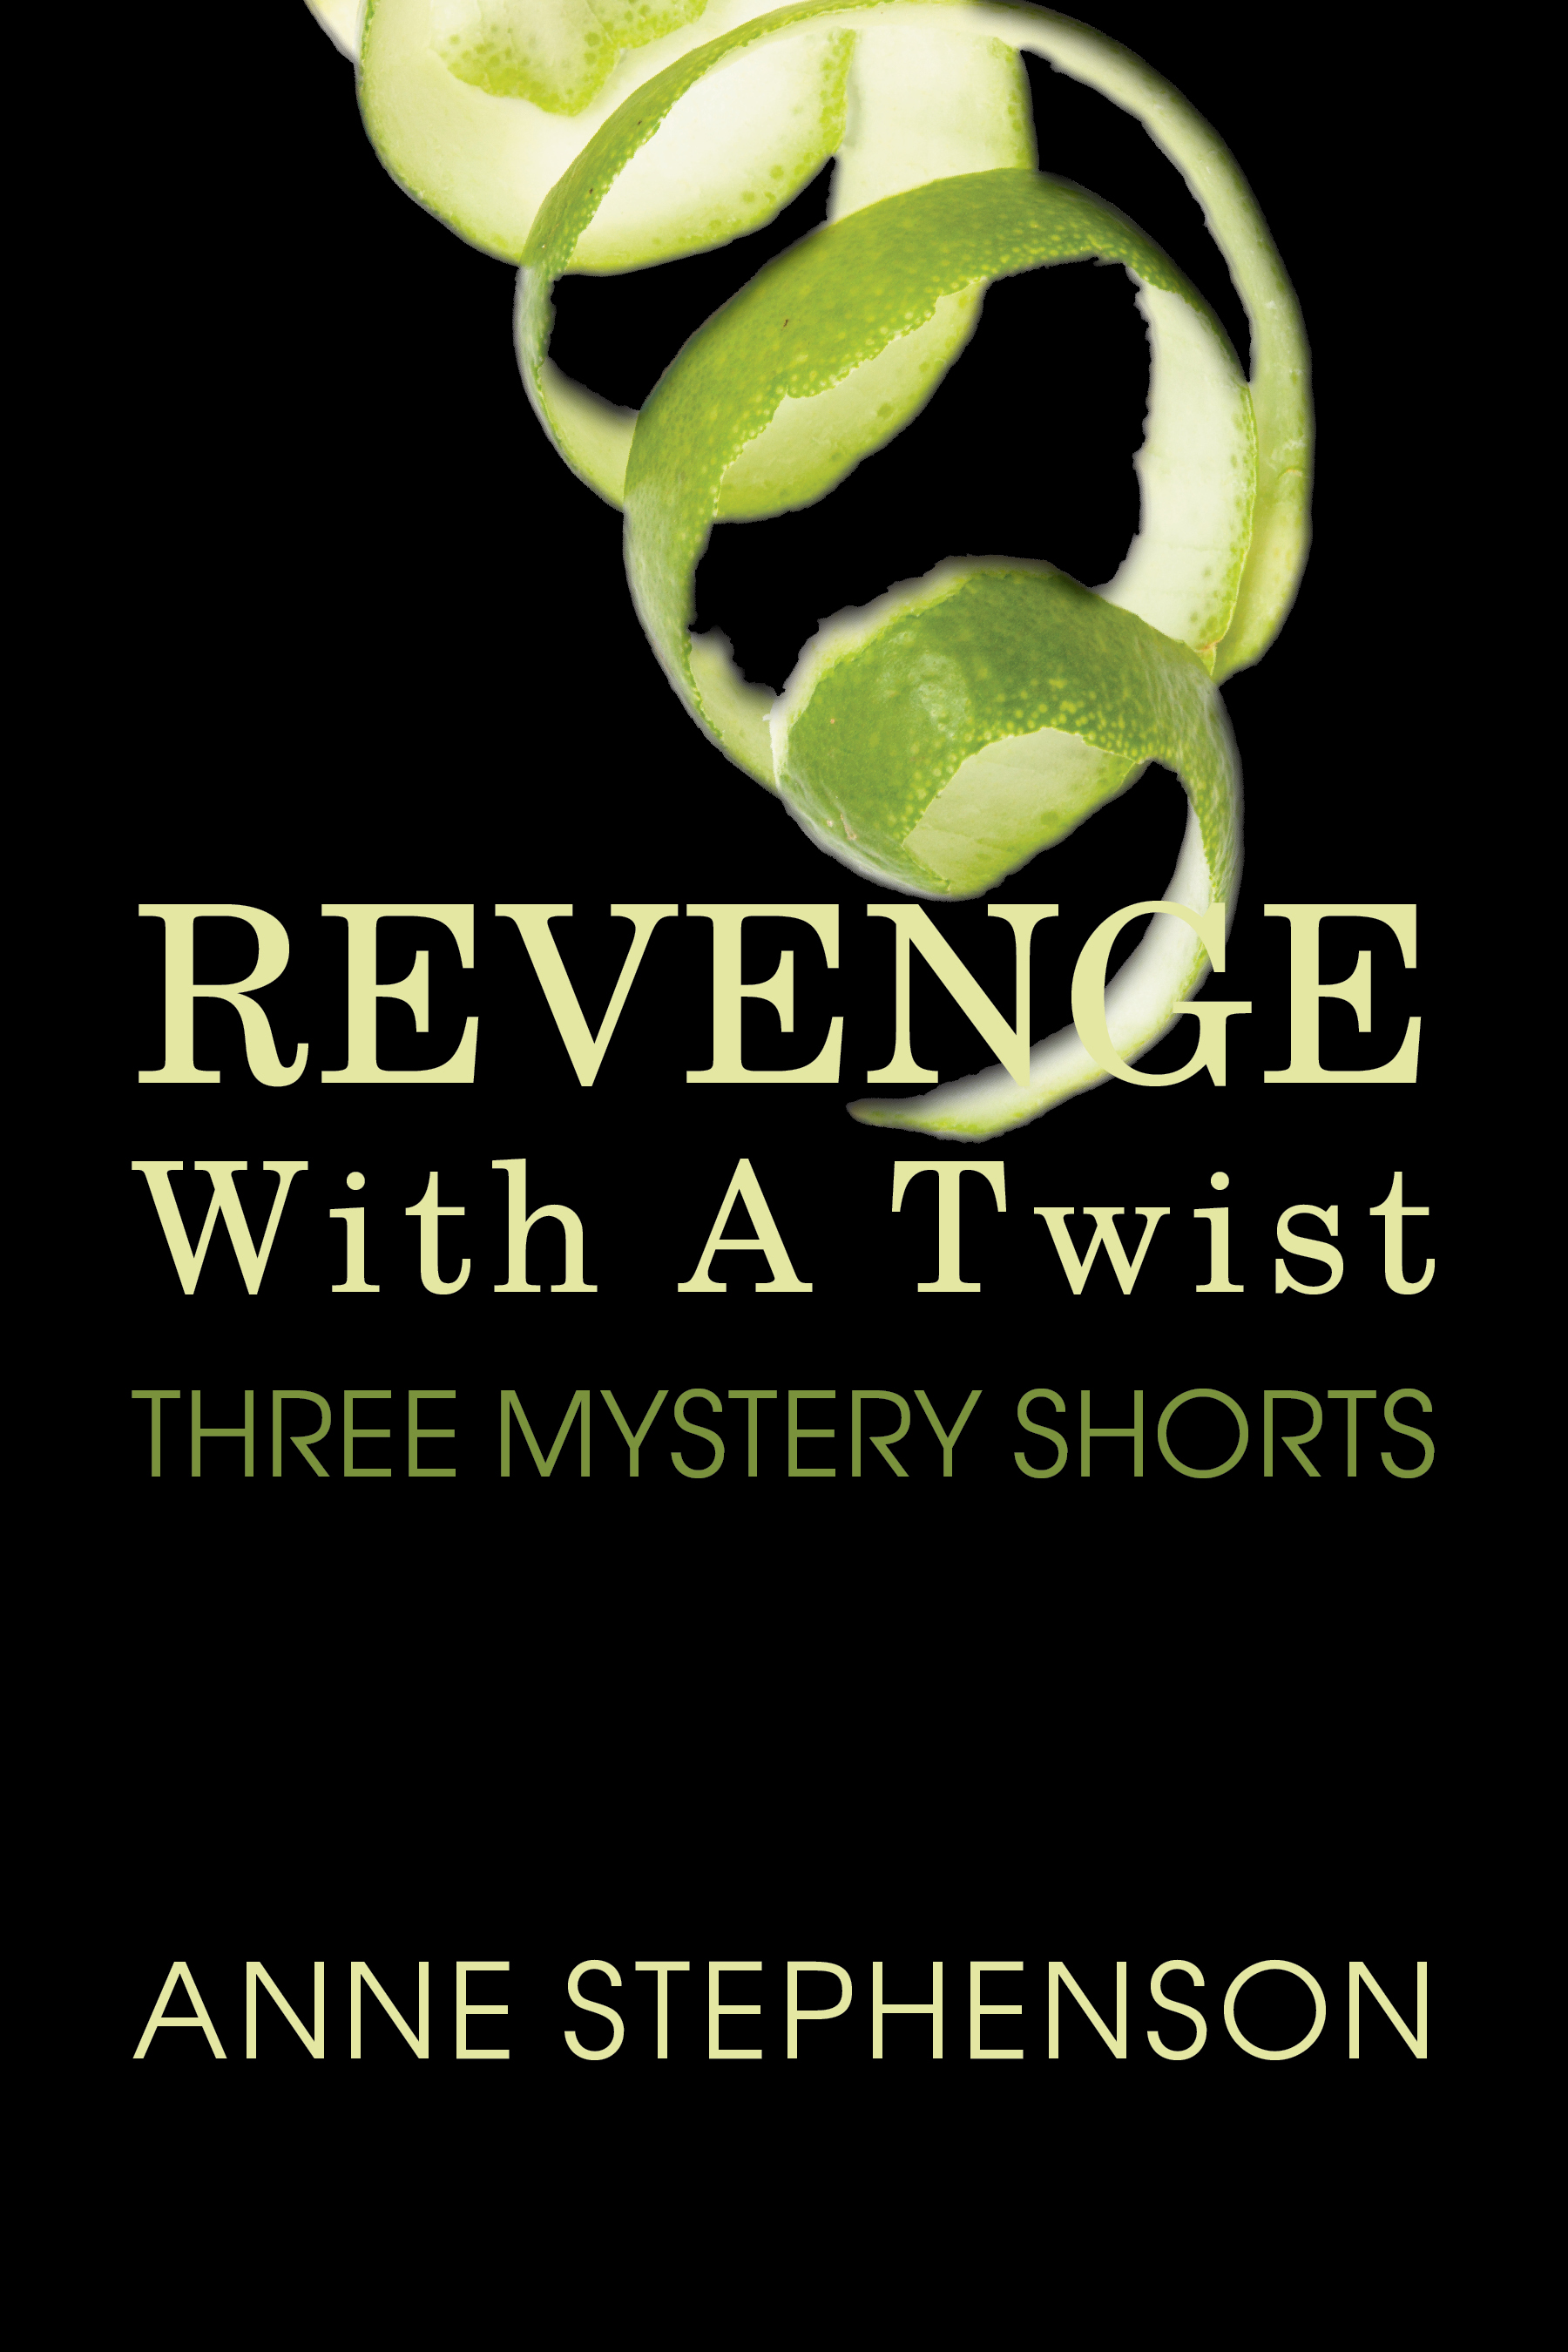 Revenge With A Twist  Available on  Kobo  and  Kindle , as well as other ebook platforms!  Cover artwork and ebook formatting provided by Cover&Layout.